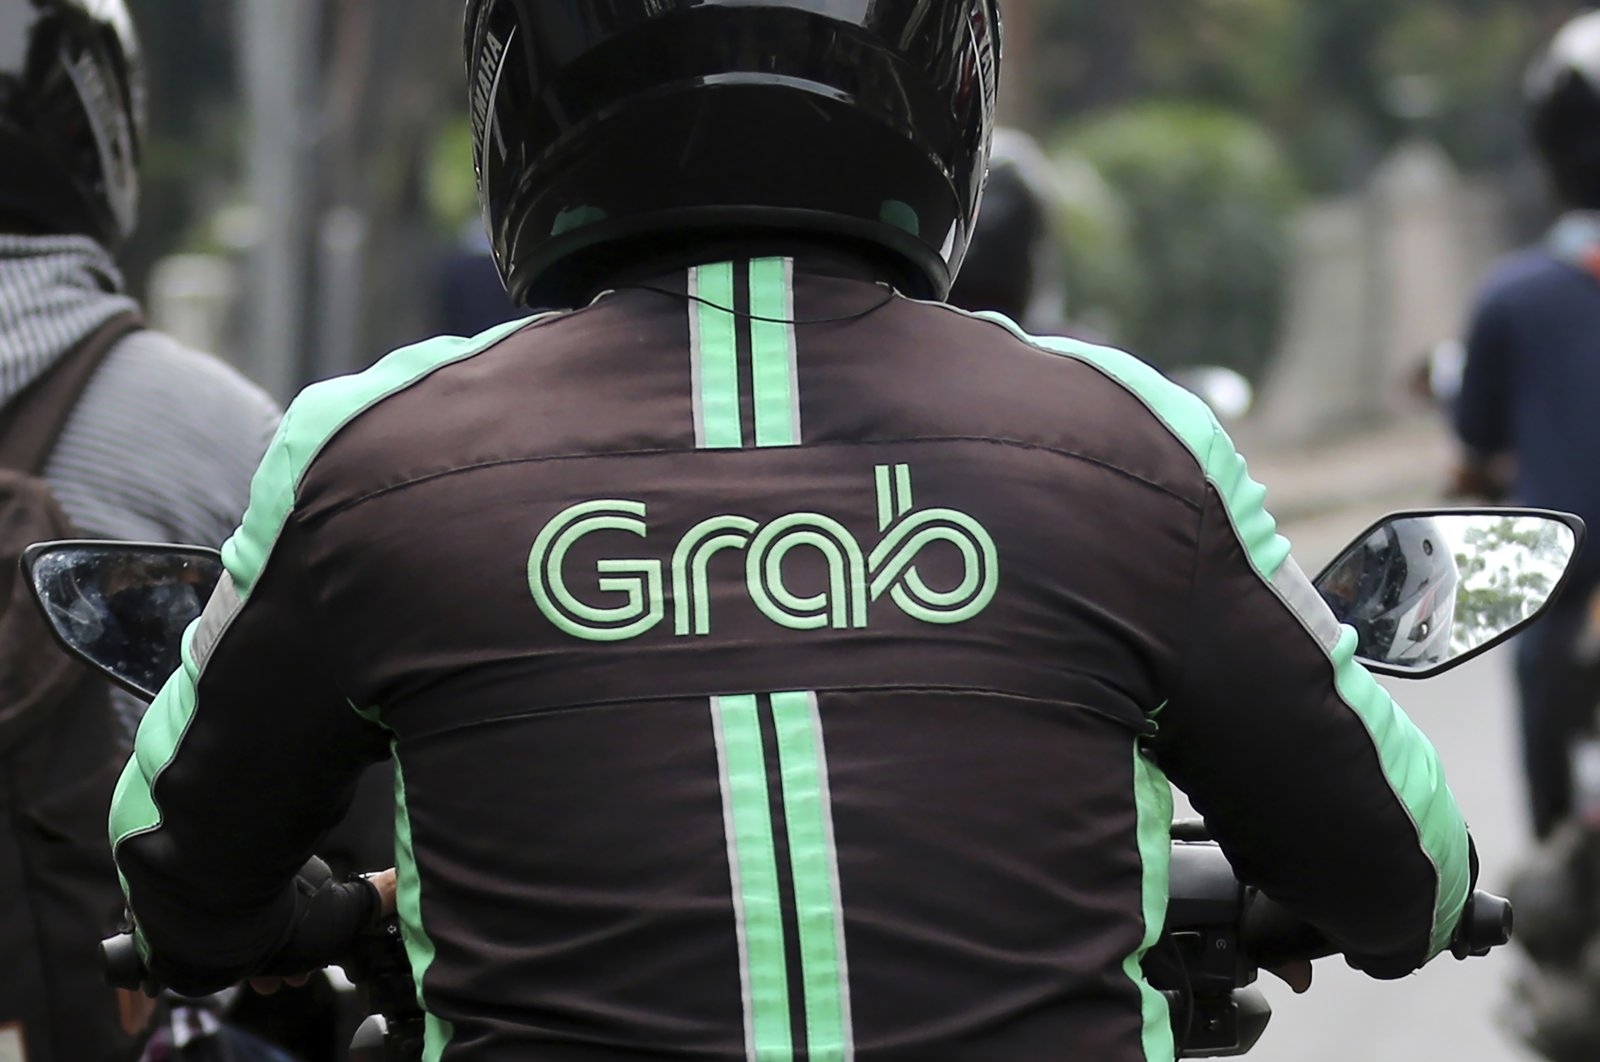 A GrabBike driver rides on his motorbike in Jakarta, Indonesia, July 24, 2017. (AP Photo)